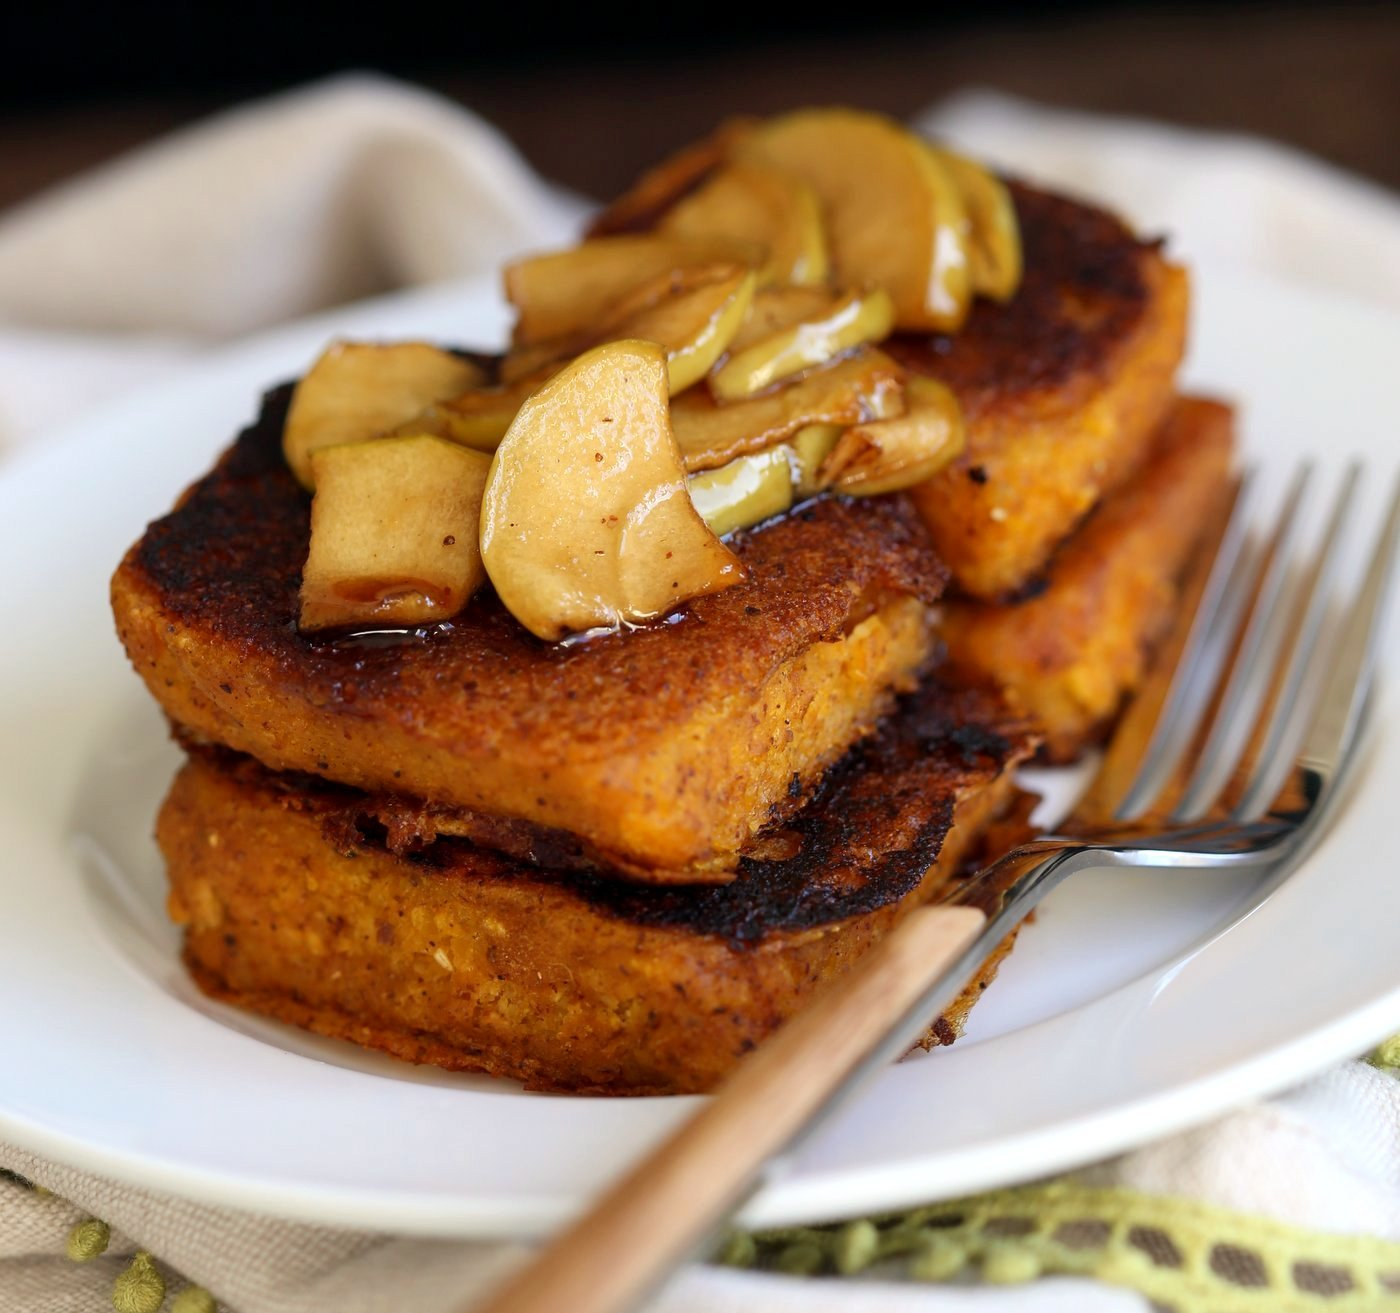 Vegan Pumpkin French Toast with Pumpkin Cornbread, pumpkin pie spices and Caramelized Apples! Breakfast for fall. Vegan Soy-free Recipe. Can be gluten-free with gluten-free cornbread #vegan #breakfast #recipe #veganricha